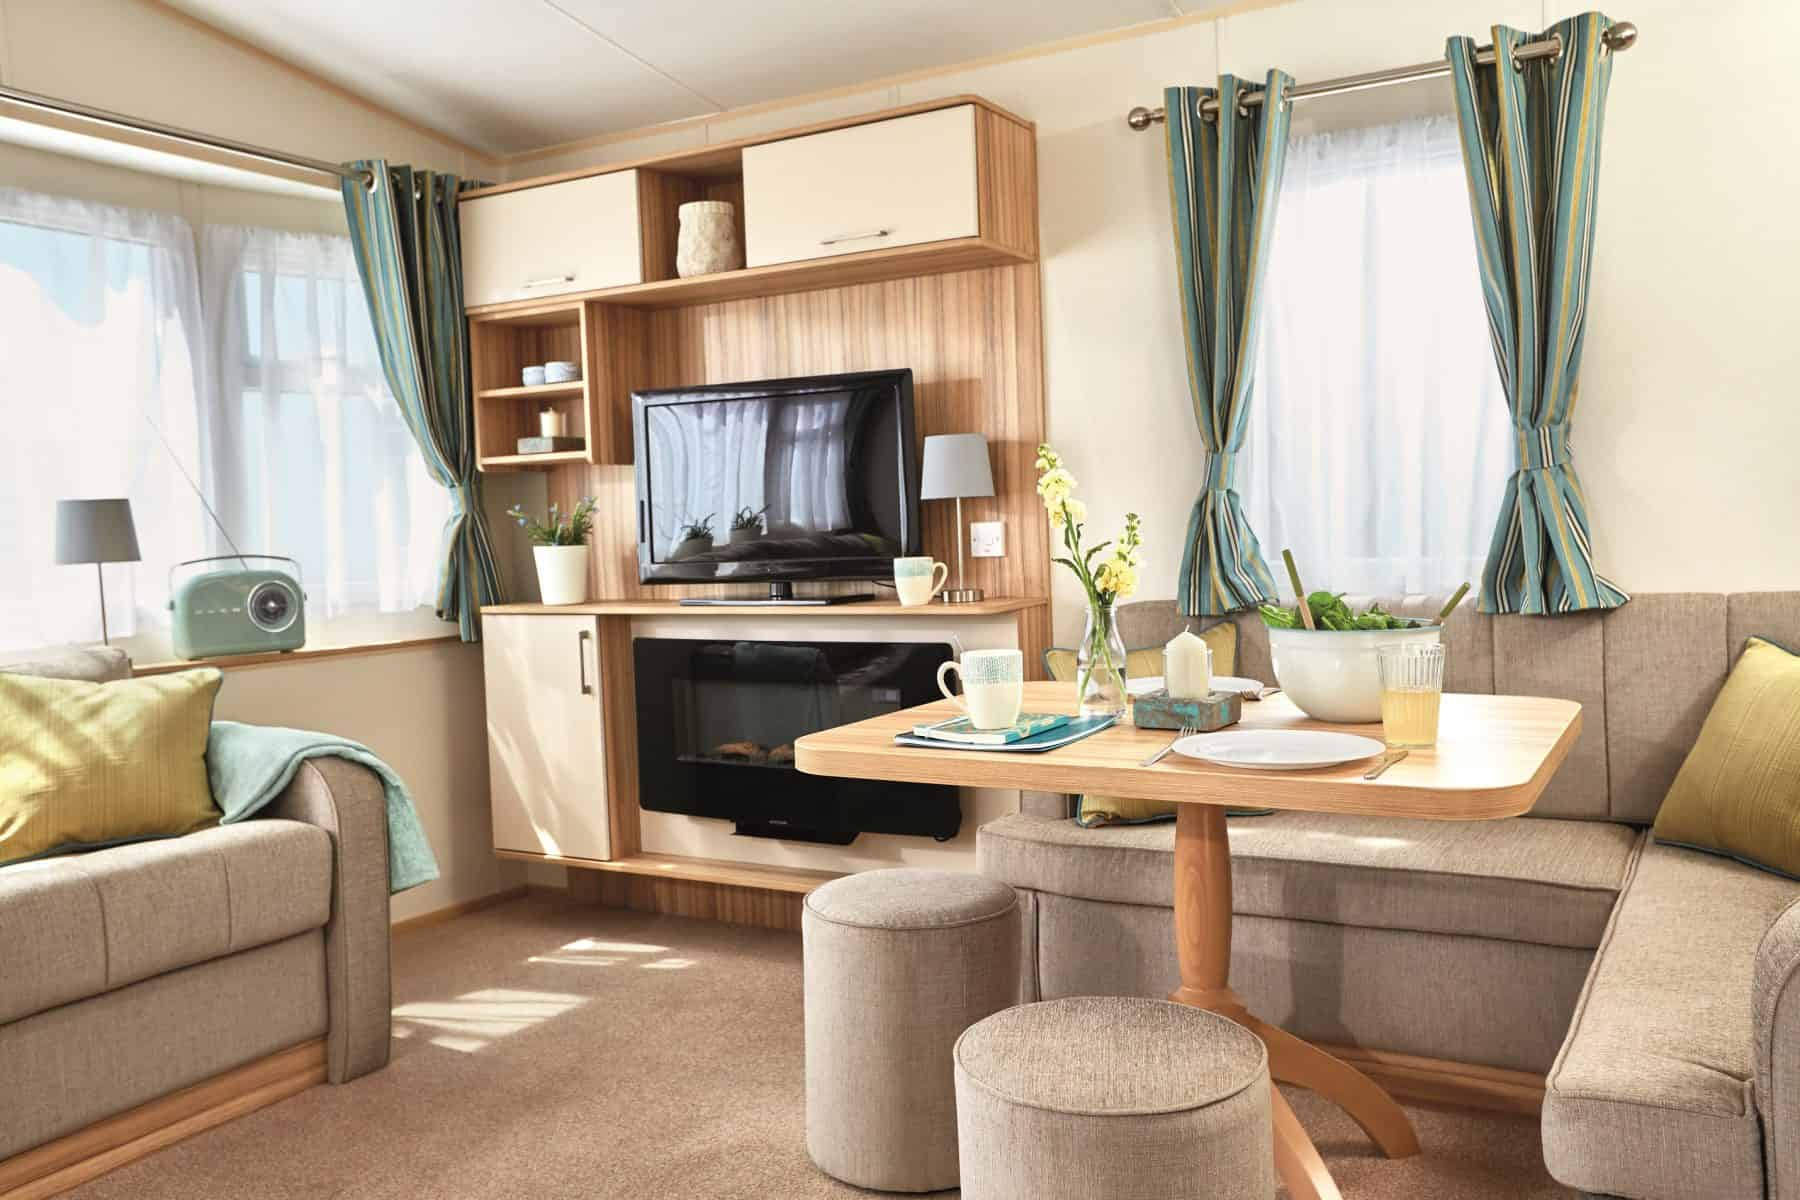 Dining table in a superior caravan